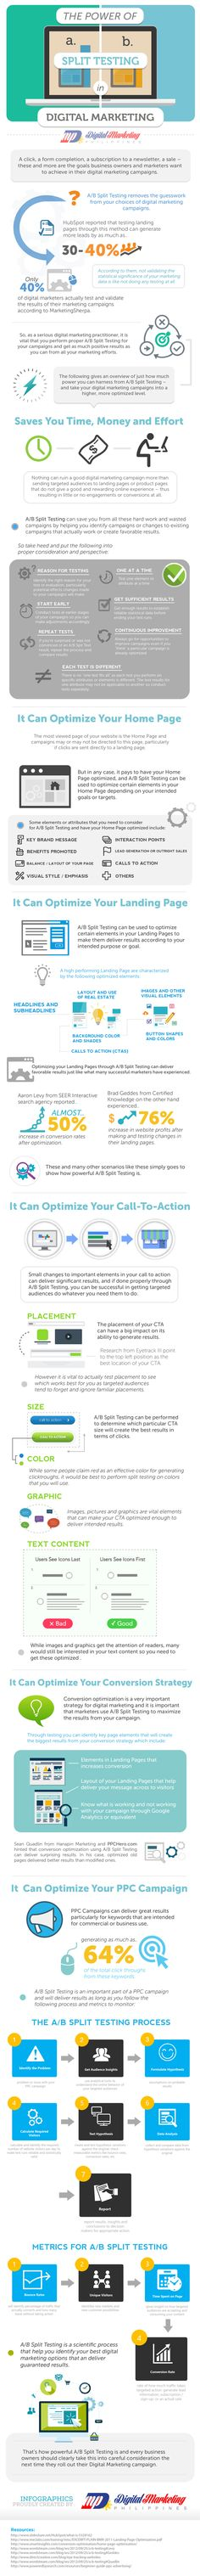 #Marketing #Infographic: The Power of Split Testing in Digital Marketing